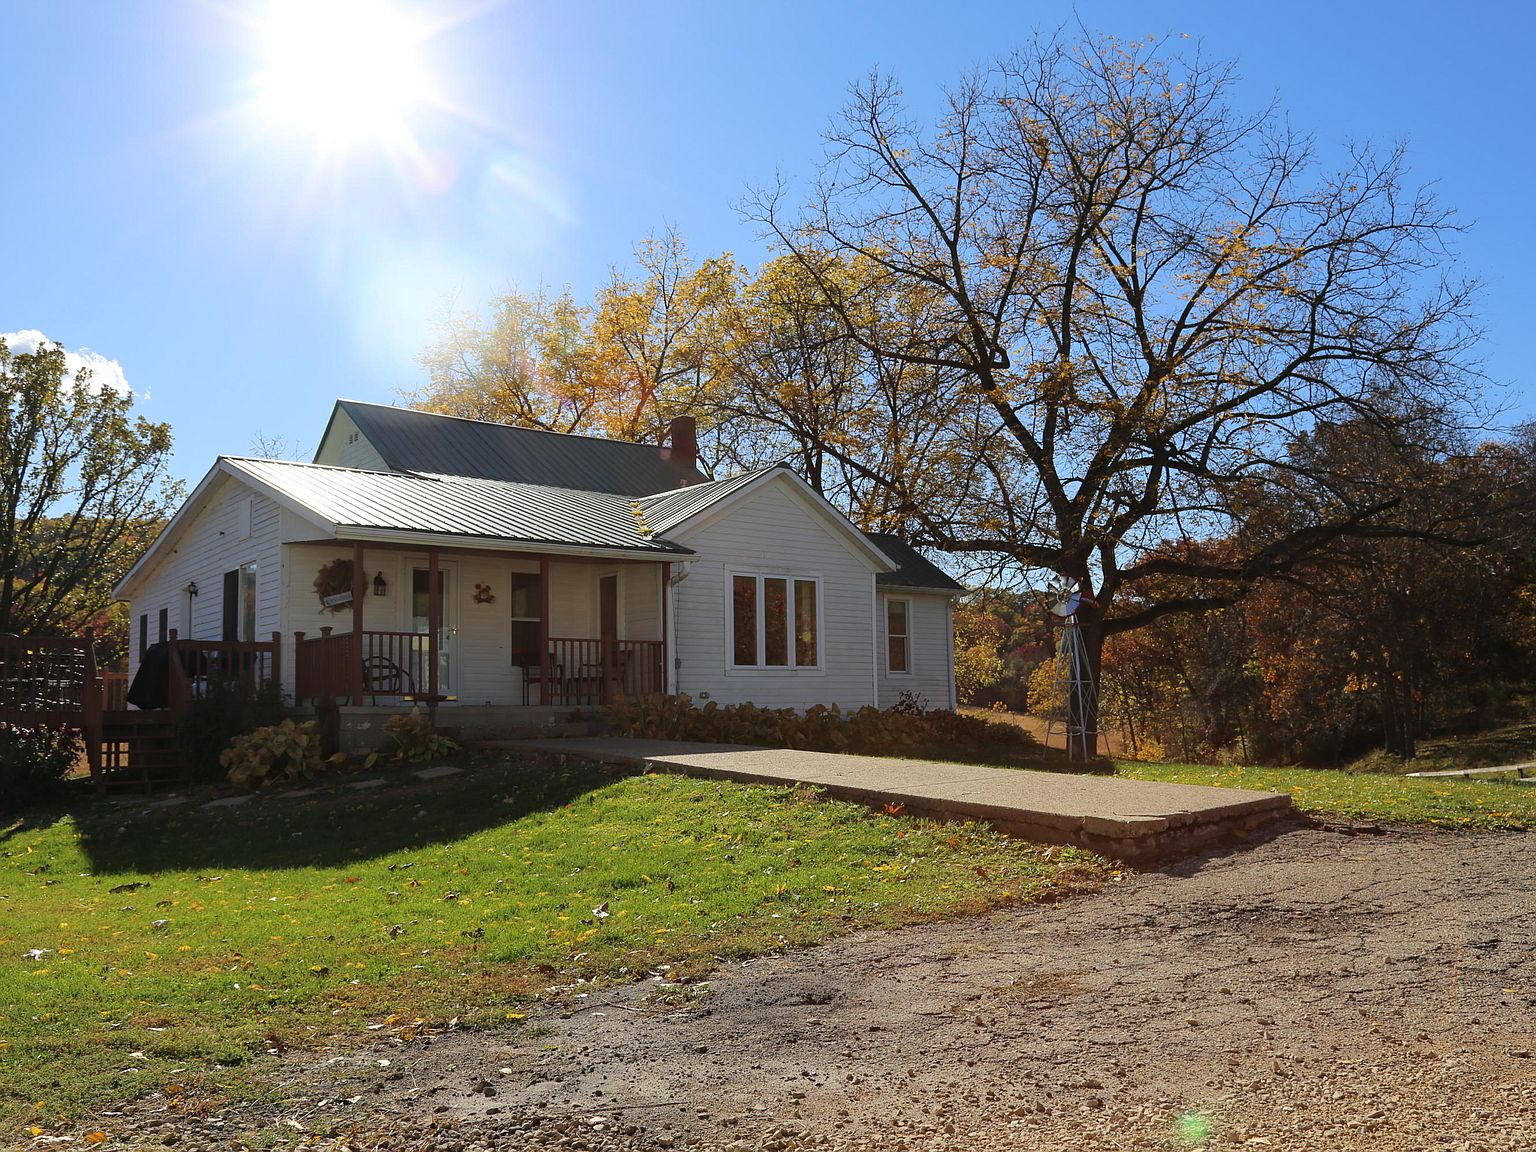 20642 kale rd 3 sparta wi 54656 mls 1714433 zillow zillow